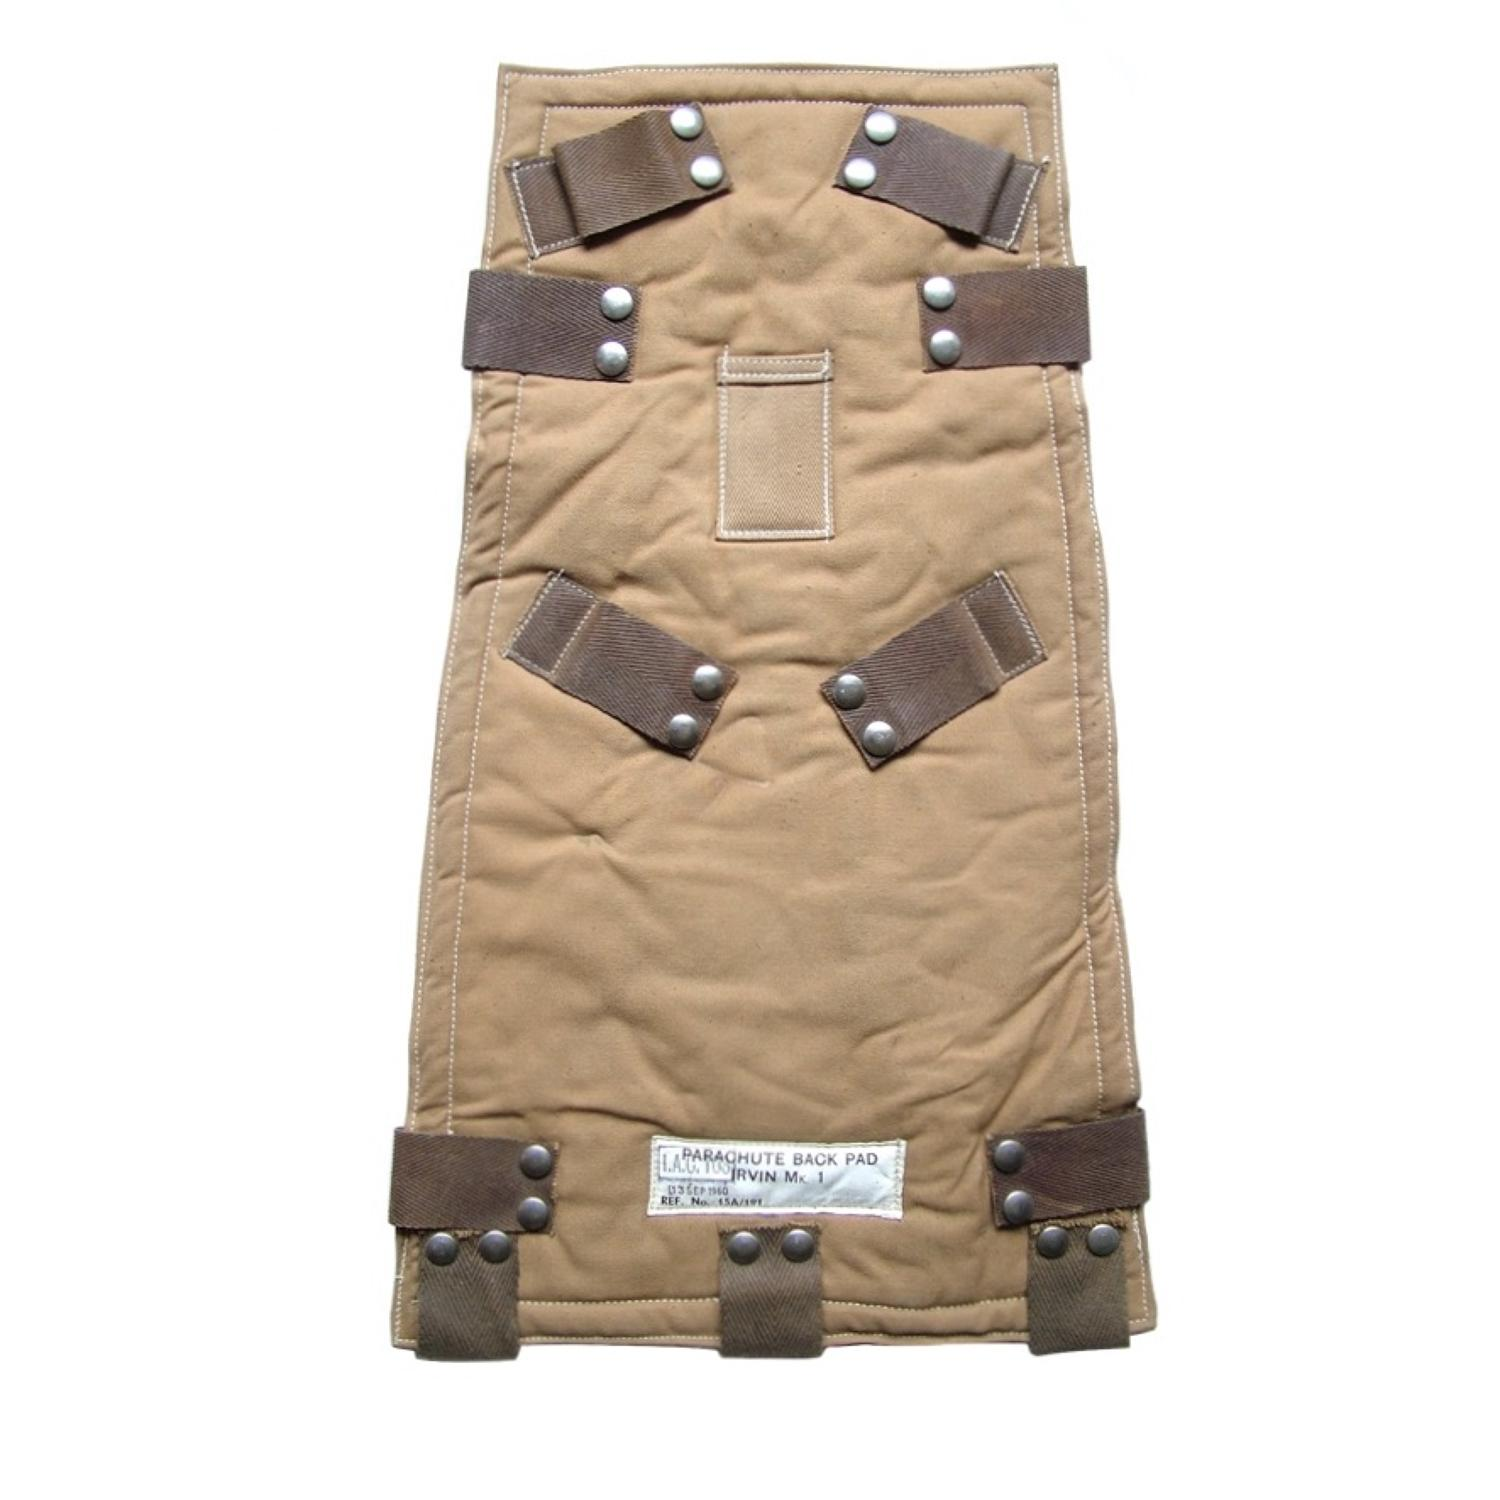 RAF parachute harness assembly backpad